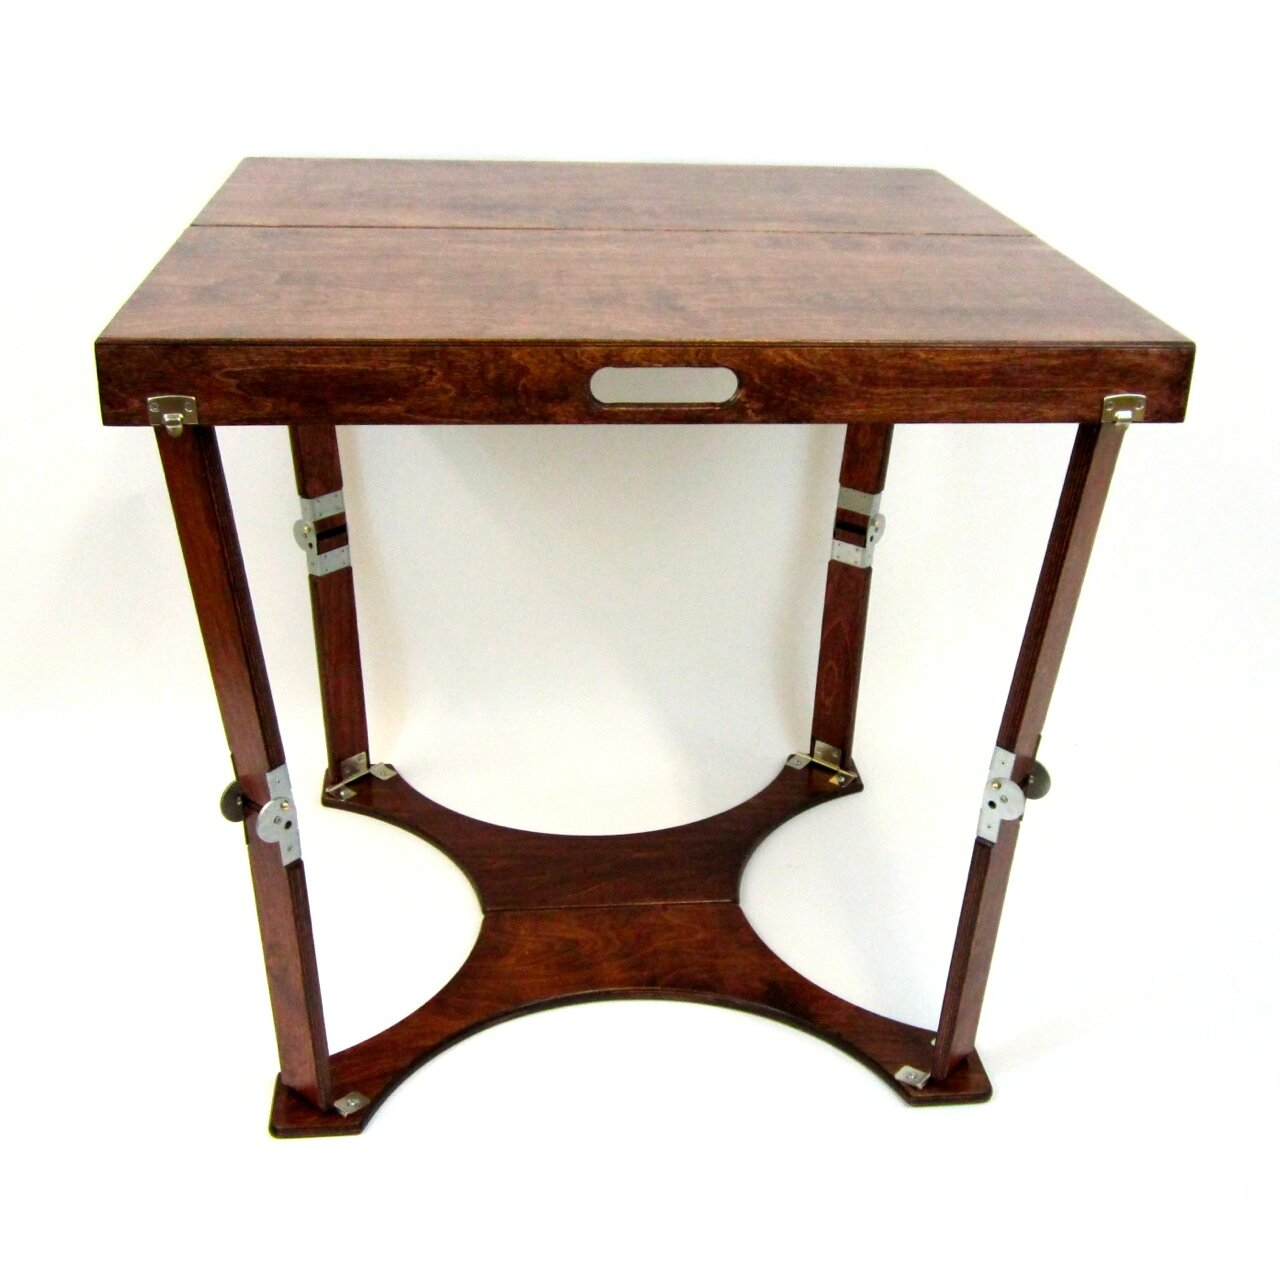 Portable Dining Table Portable Folding Dining Table Wayfairdining Table Portable